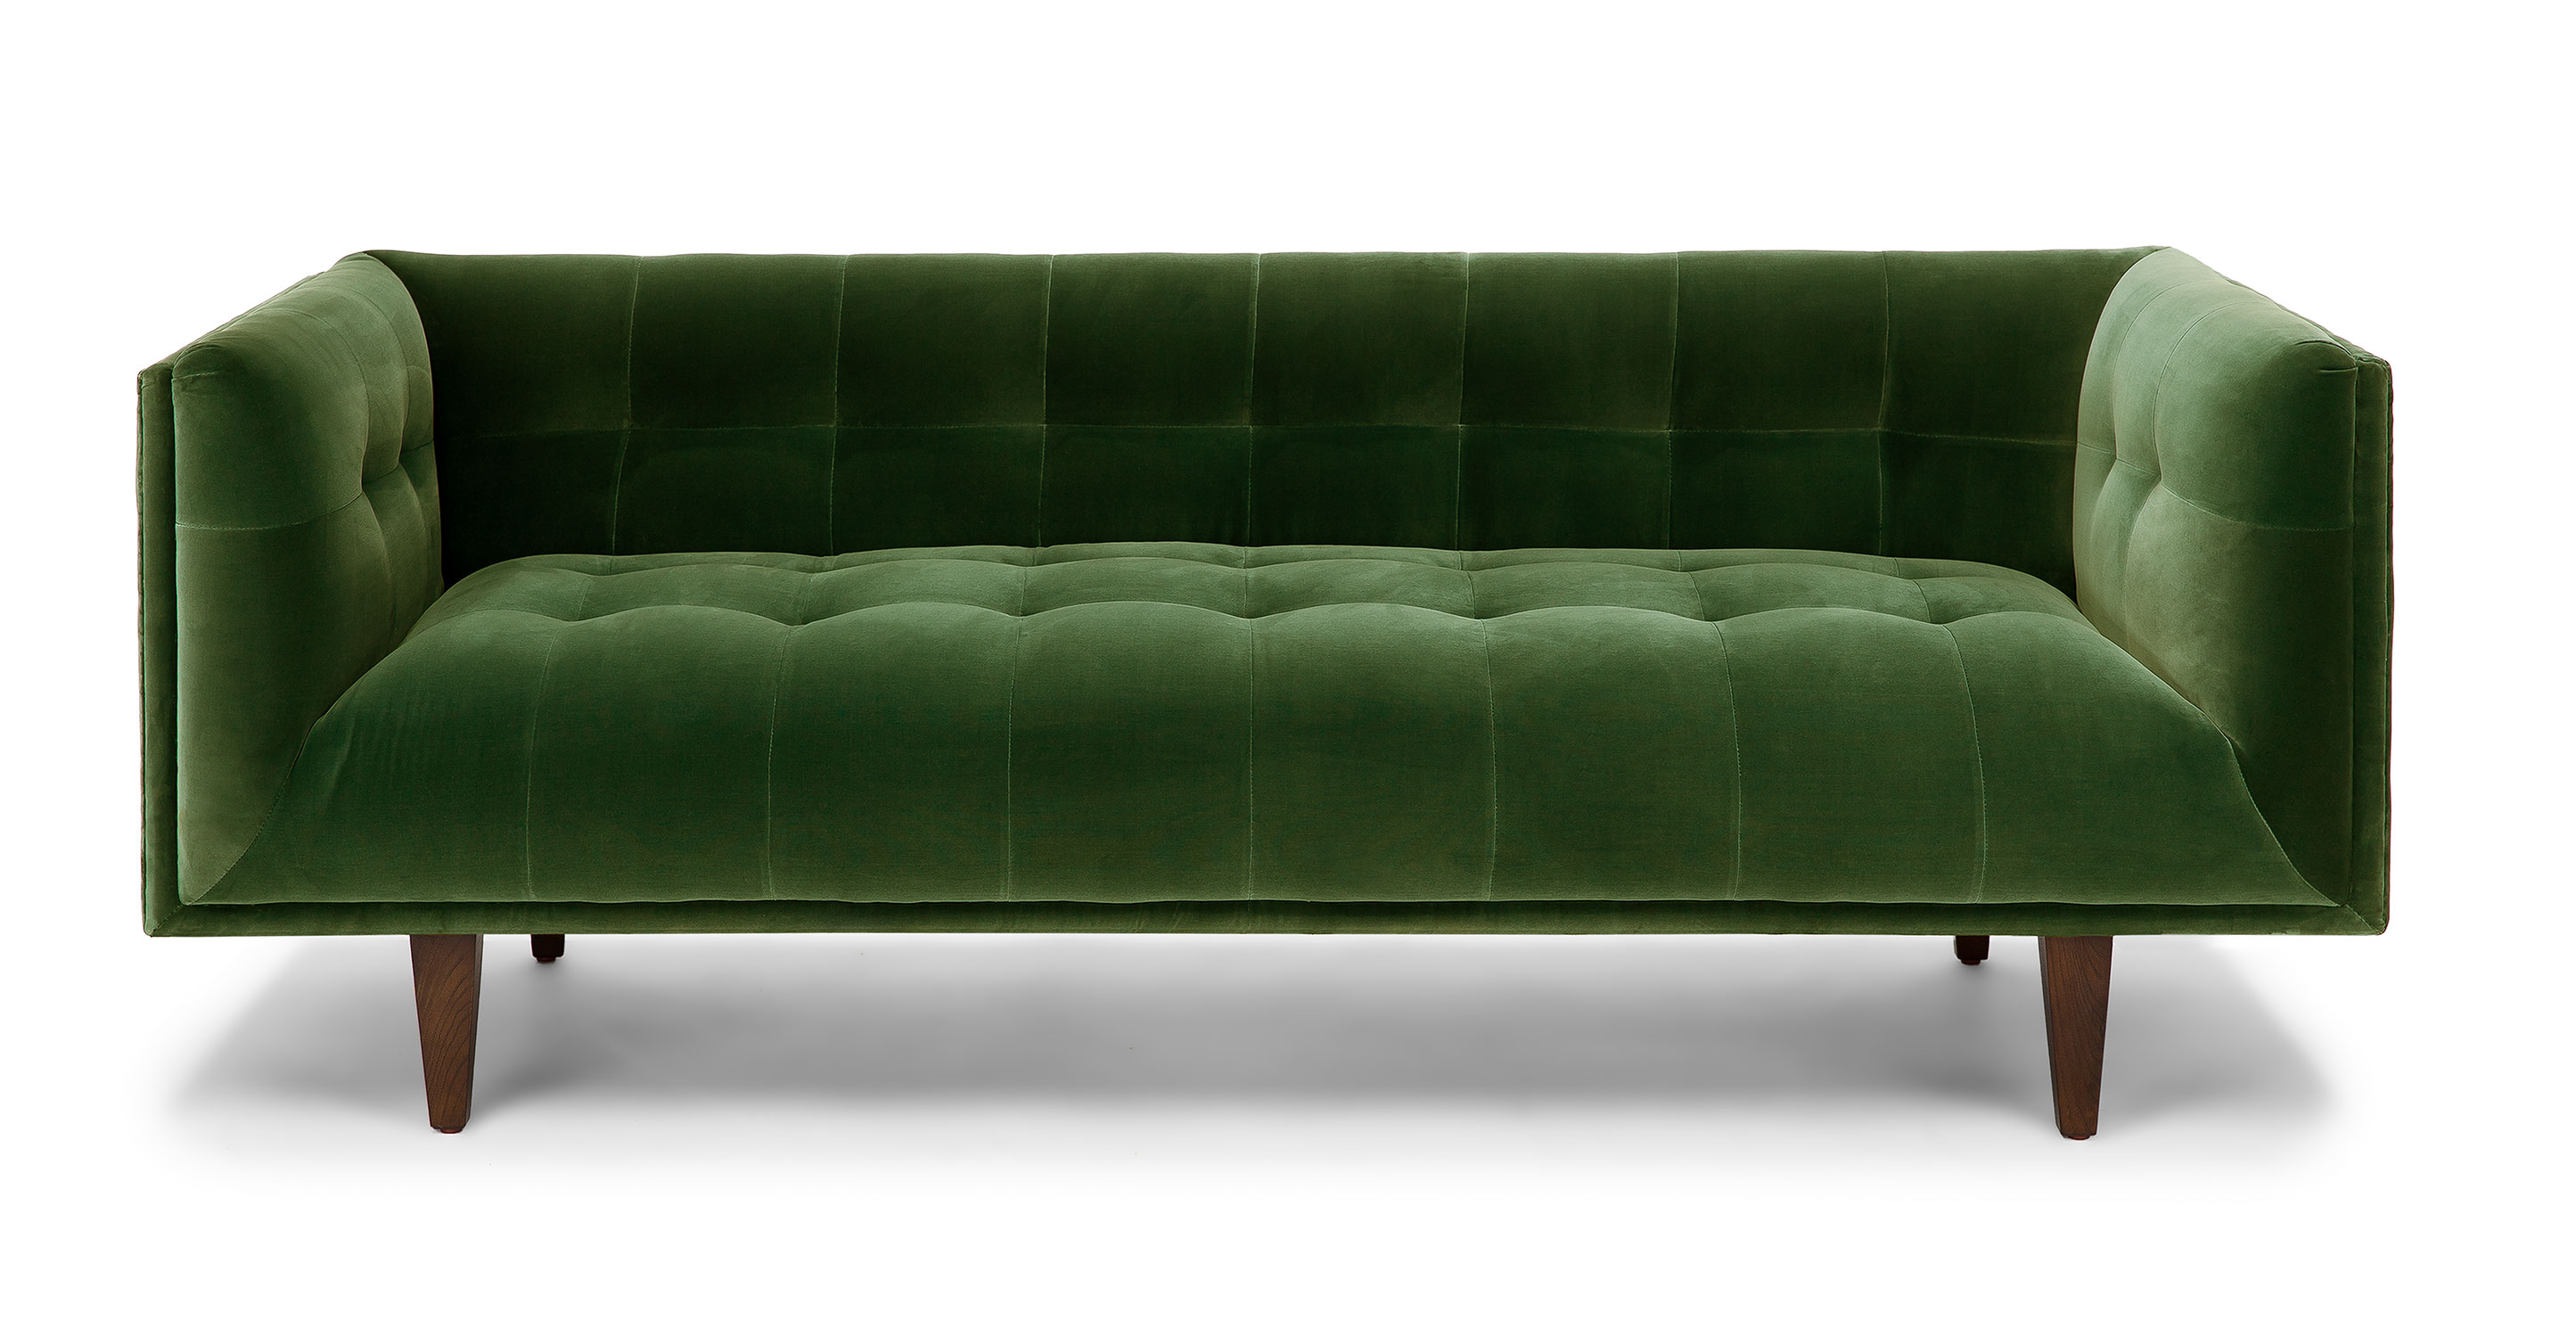 Picture of: Grass Green Cirrus 3 Seater Velvet Sofa Article